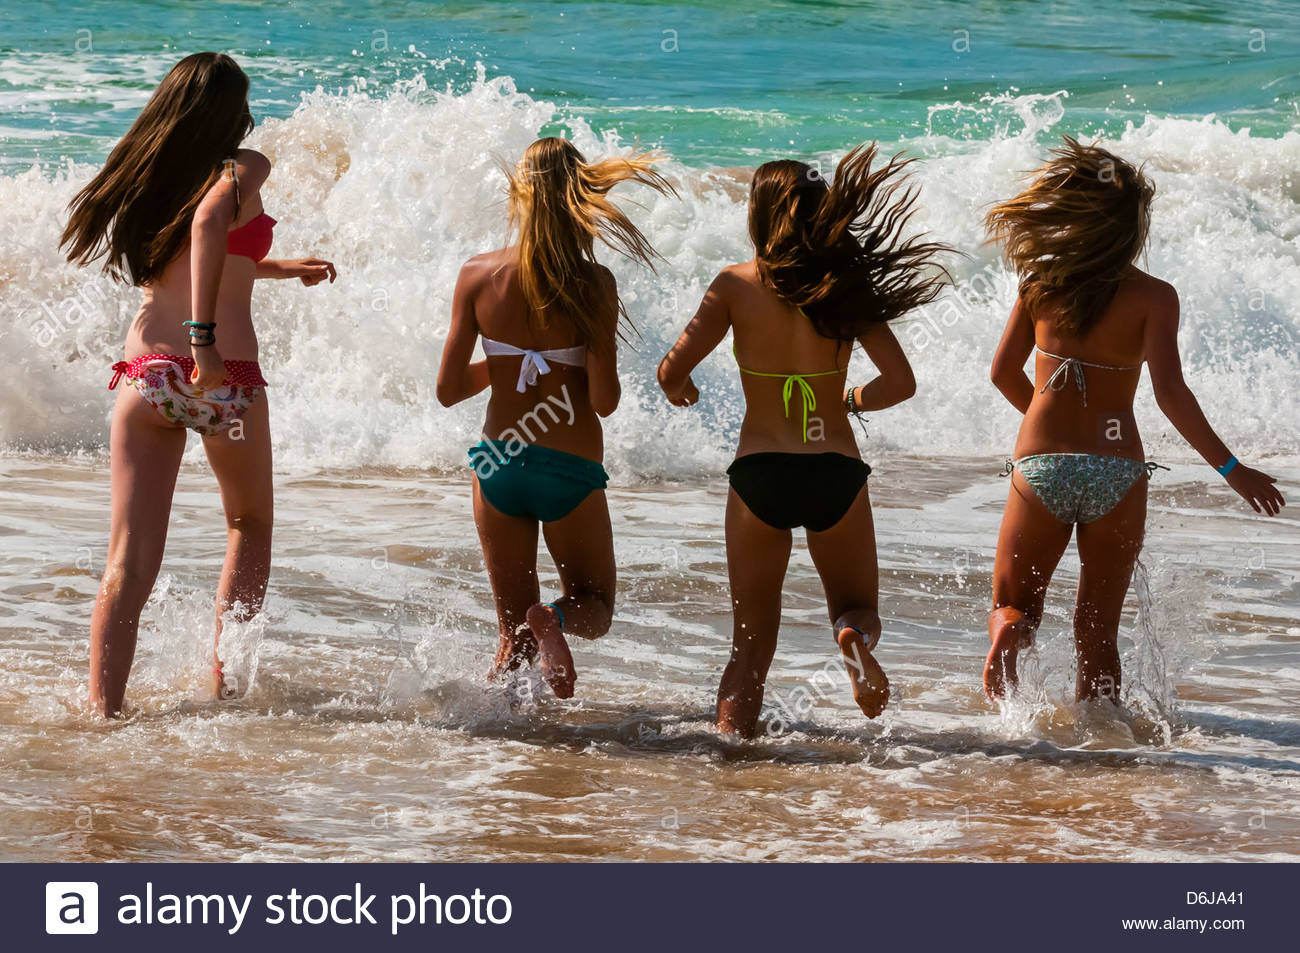 Austroliya Beach Girl Photo